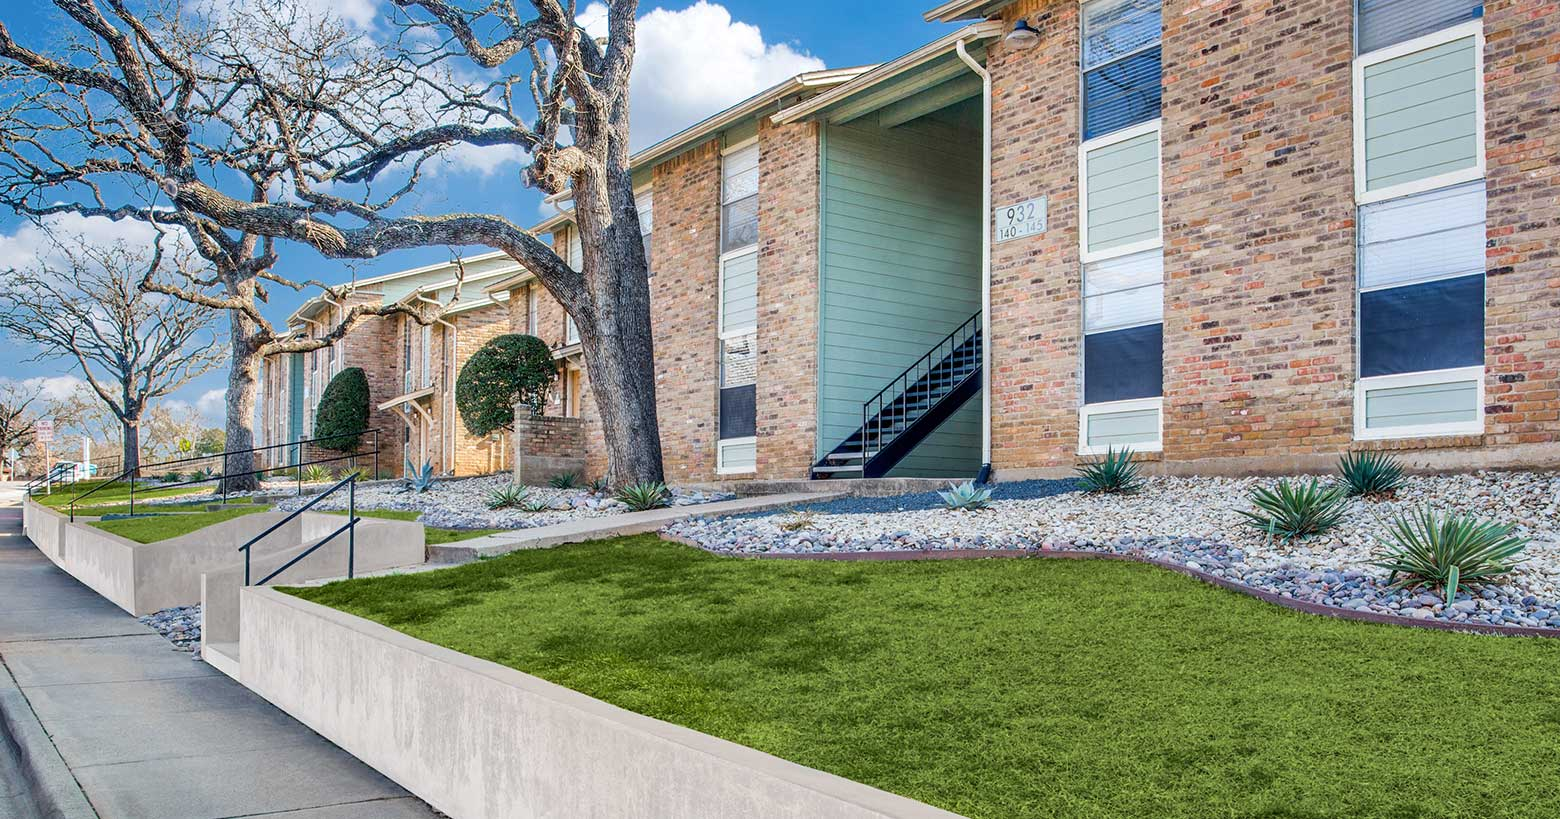 apartments in bedford texas for rent